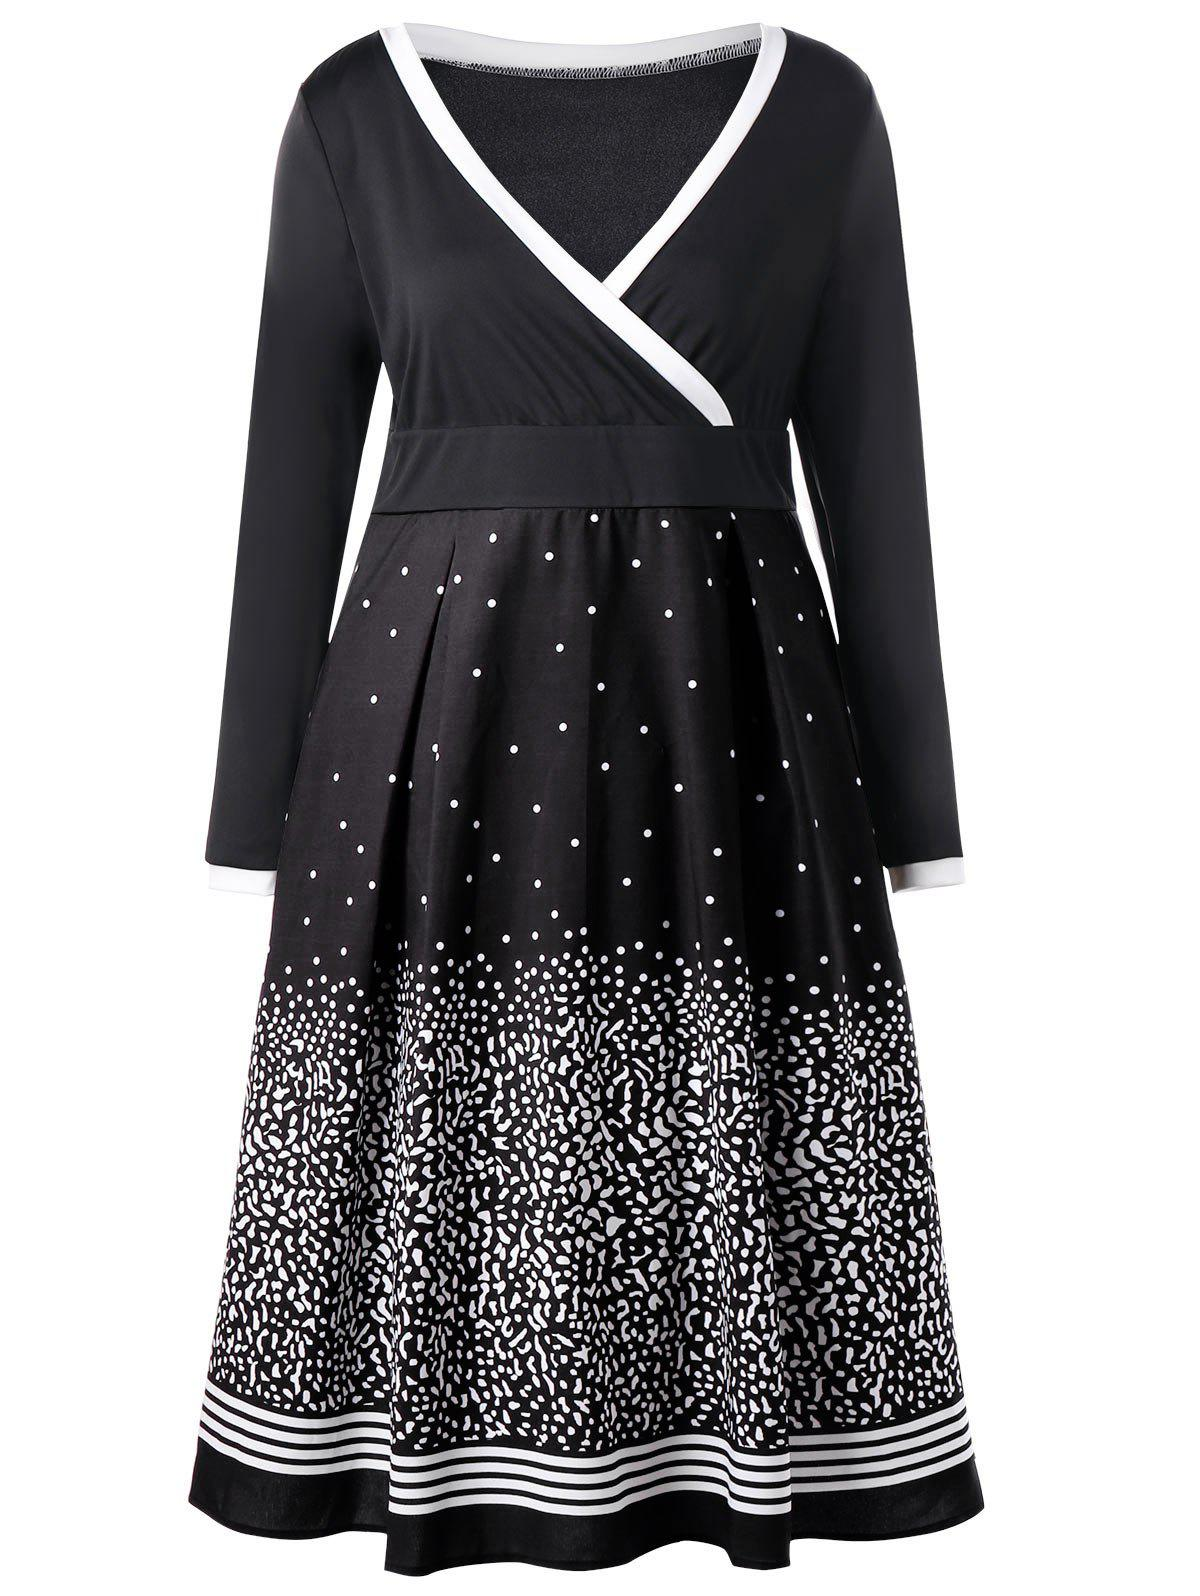 Plus Size Long Sleeve Dot Print Surplice DressWOMEN<br><br>Size: 4XL; Color: BLACK; Style: Brief; Material: Polyester,Spandex; Silhouette: A-Line; Dresses Length: Mid-Calf; Neckline: V-Neck; Sleeve Length: Long Sleeves; Pattern Type: Print; With Belt: No; Season: Fall,Spring; Weight: 0.3840kg; Package Contents: 1 x Dress;